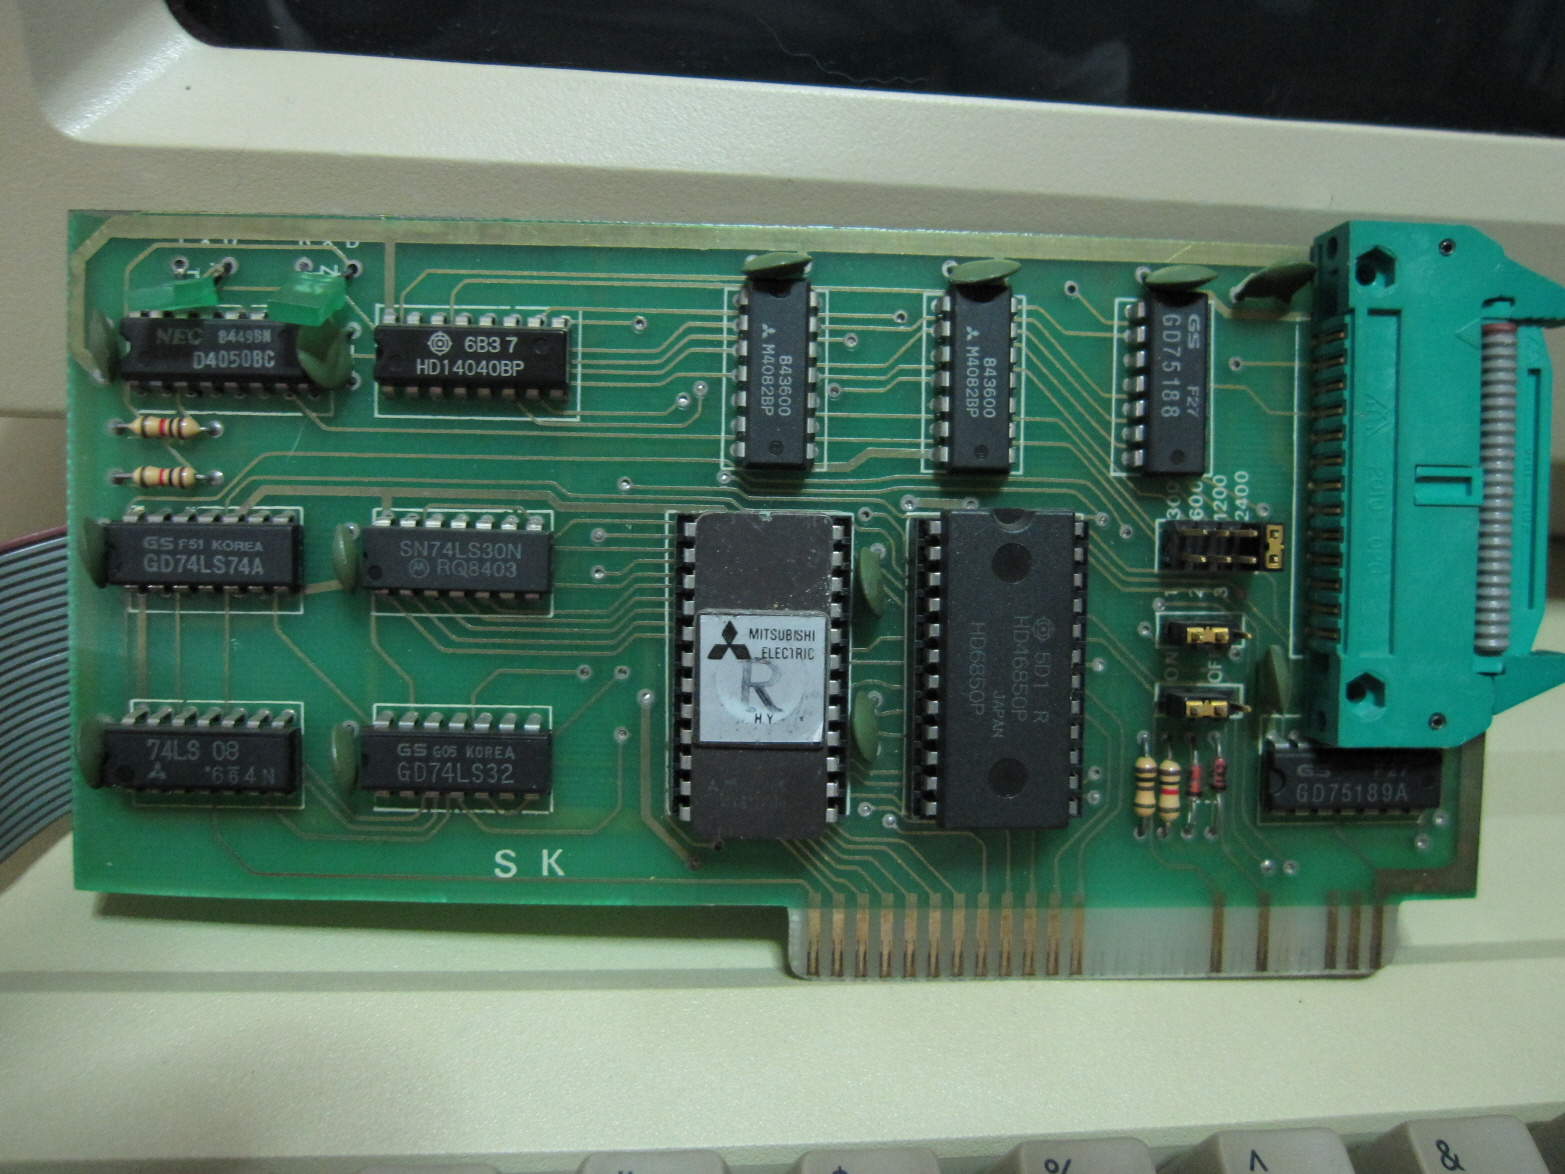 RS-232C Serial Card - How can I use it for ADT or ADTPro?